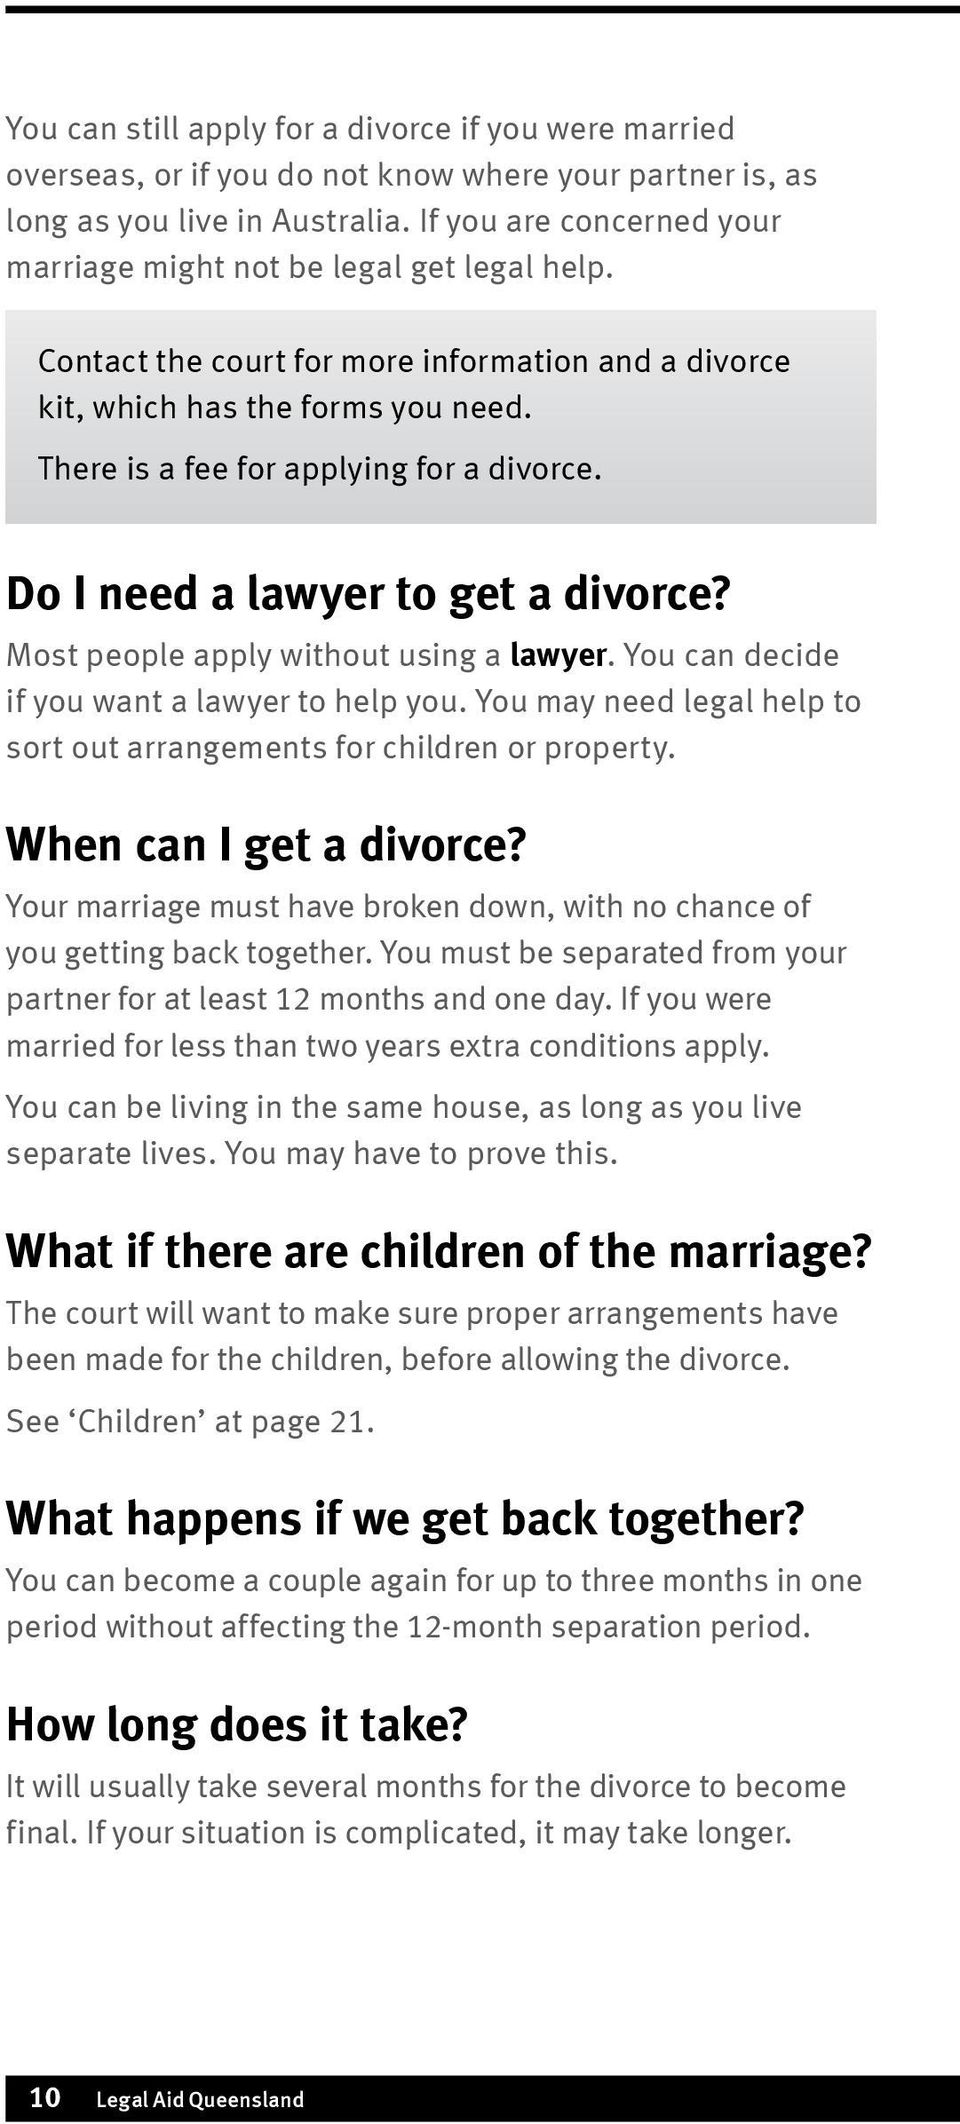 Do I need a lawyer to get a divorce? Most people apply without using a lawyer. You can decide if you want a lawyer to help you.